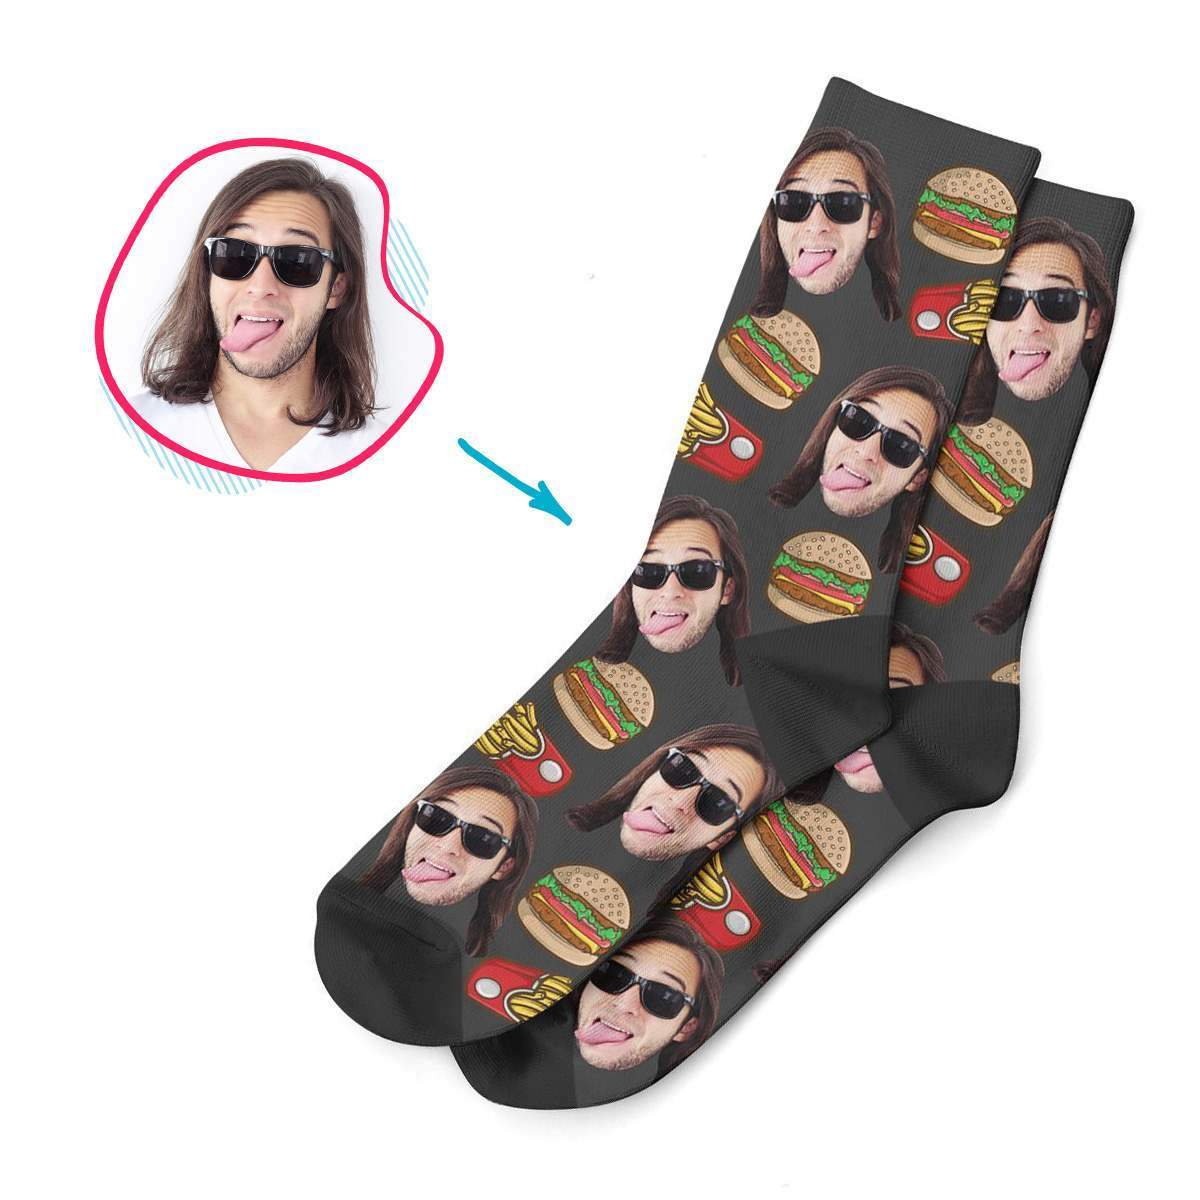 dark Fastfood socks personalized with photo of face printed on them